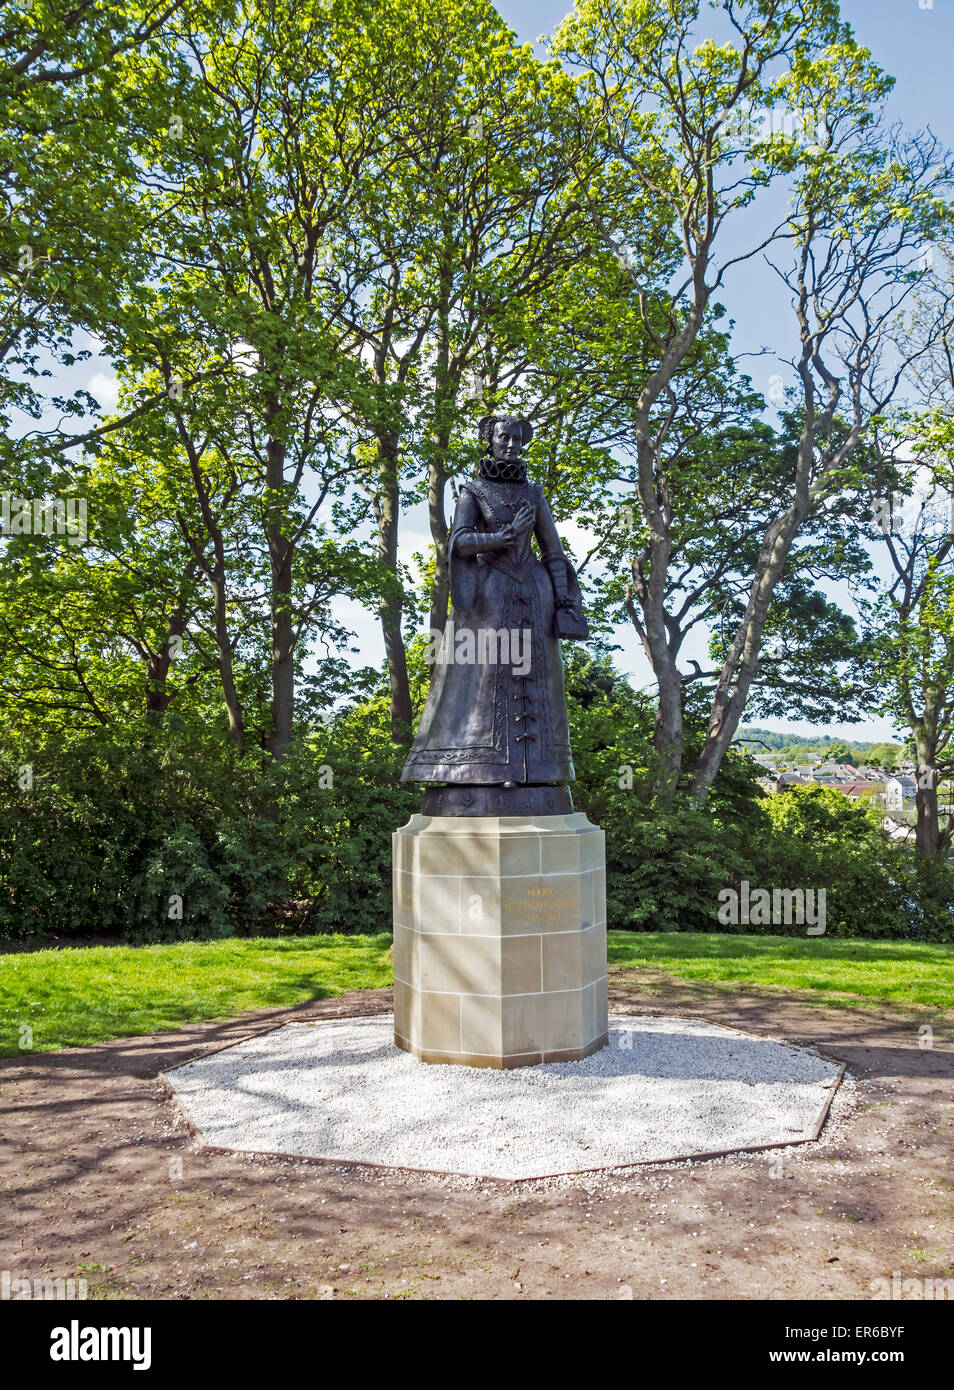 Statue of Mary Queen of Scots at Linlithgow Palace - birth-place of Mary Queen of Scots - In Linlithgow West Lothian - Stock Image